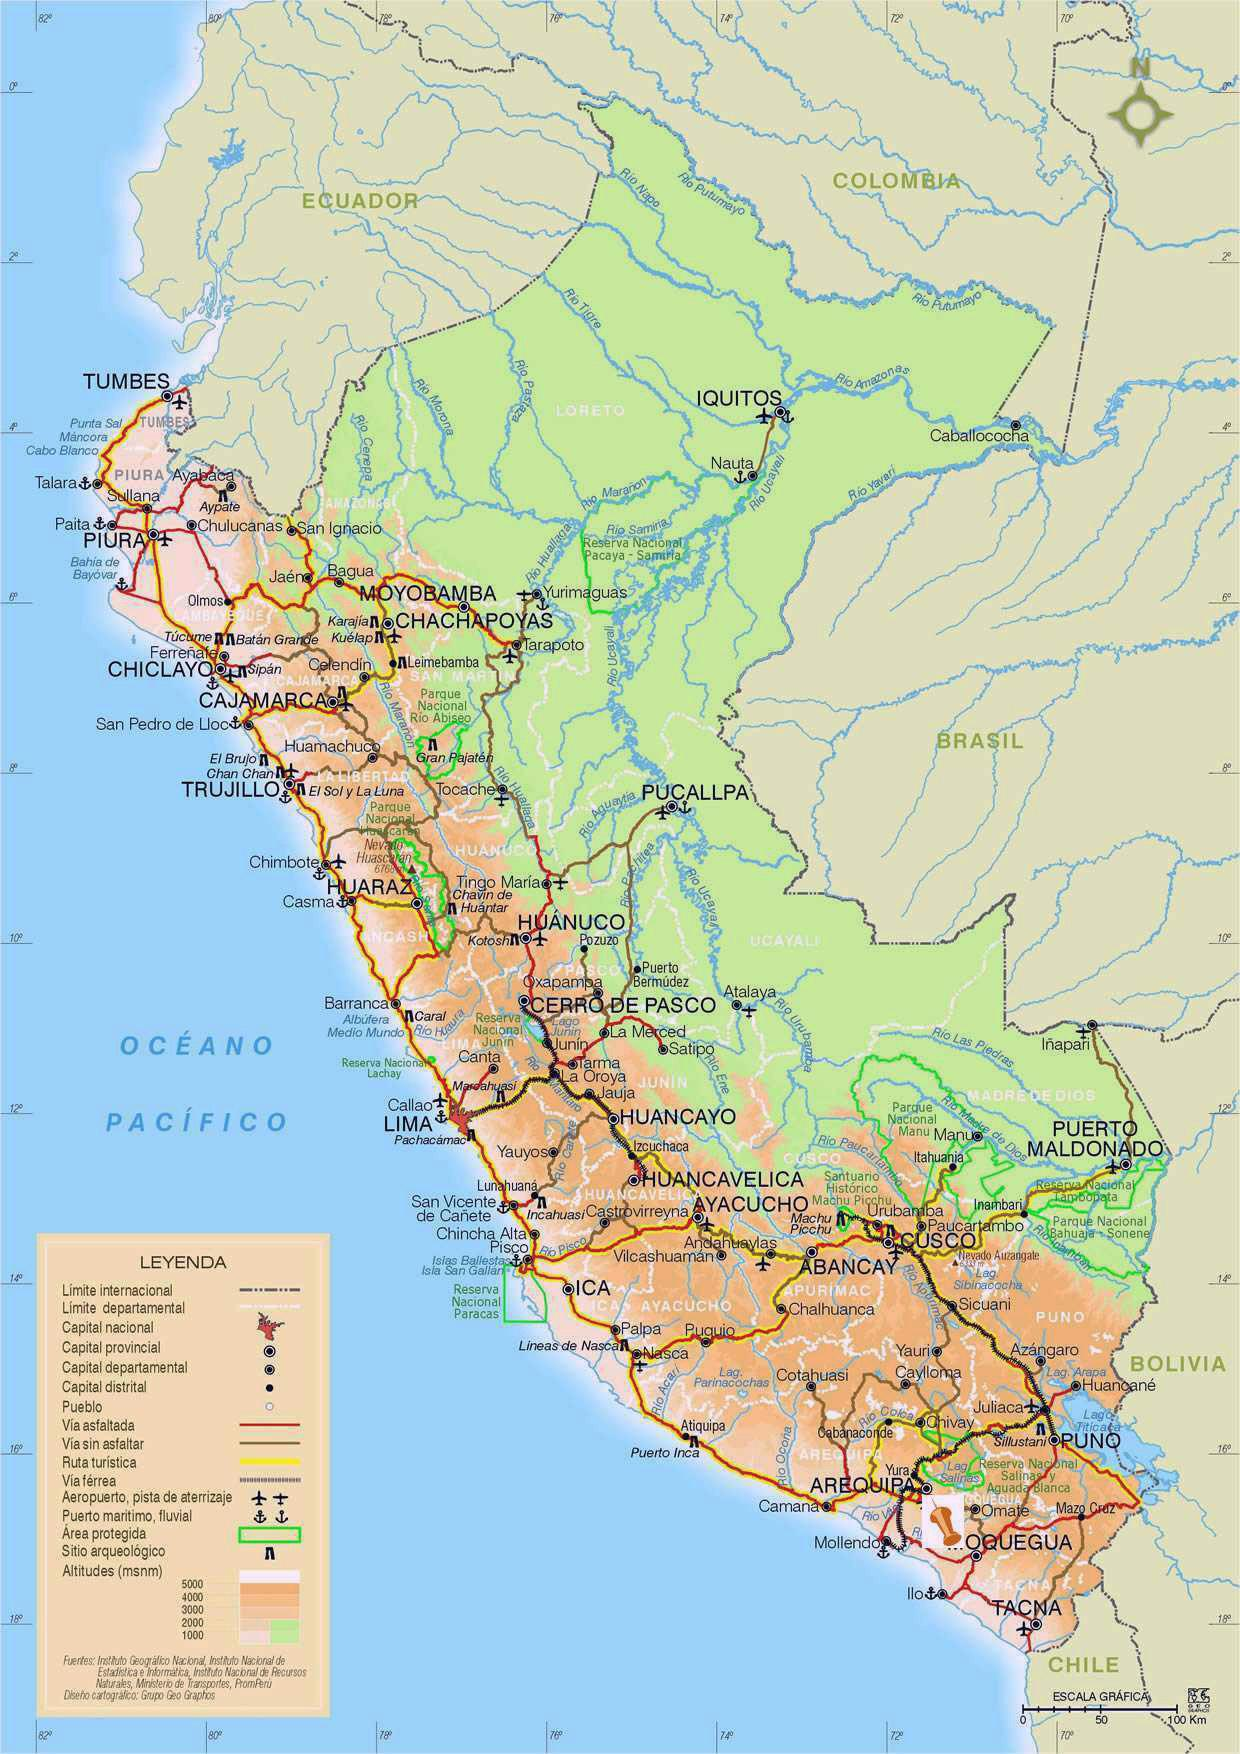 Peru road map - Map of Peru road (South America - Americas) South America Road Map on road map biology, features south america, destination south america, road map scandinavia, library south america, camping south america, driving in columbia south america, road map brazil, road map buenos aires, hotels south america, water south america, trip south america, road map anguilla, road map zimbabwe, tourist south america, landlocked country south america, lake nicaragua map central america, road map martinique, blog south america, road map suriname,